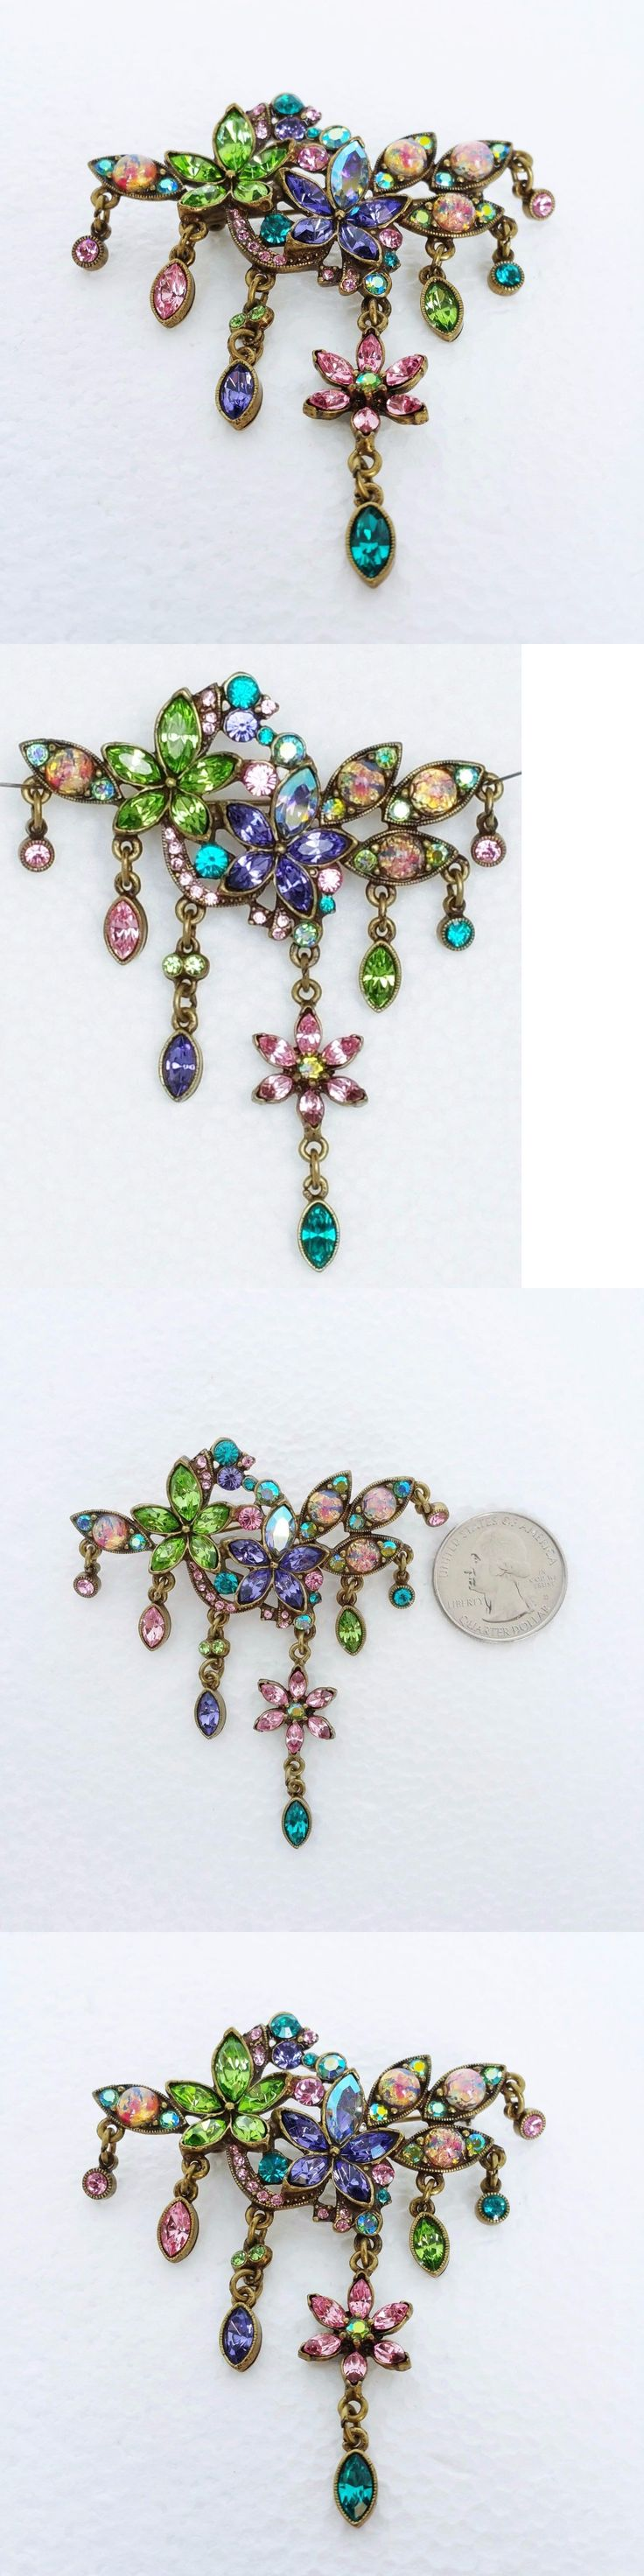 Pins and Brooches 50677: New Sweet Romance Womens Brooch Pin Large Simulated Opal Rhinestones -> BUY IT NOW ONLY: $52.91 on eBay!